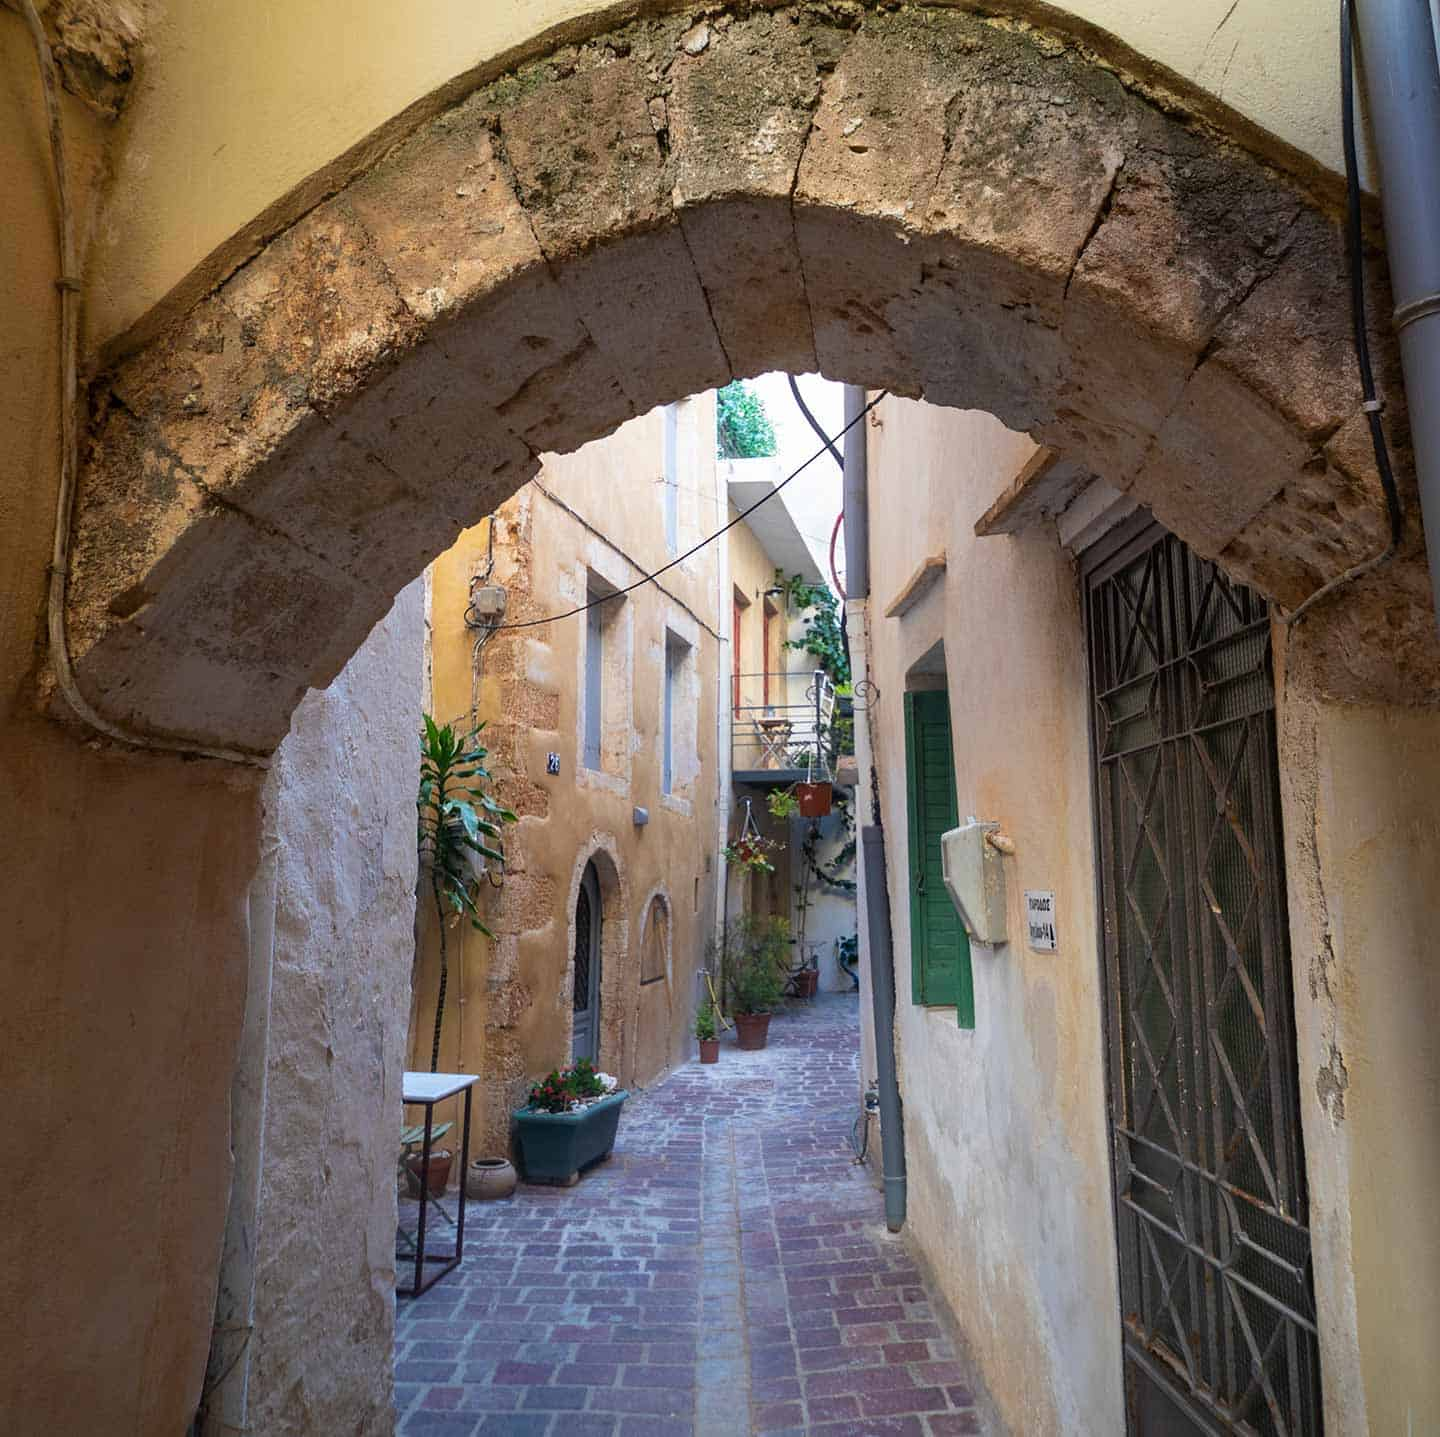 Image of a street in Old Town Chania framed by an archway